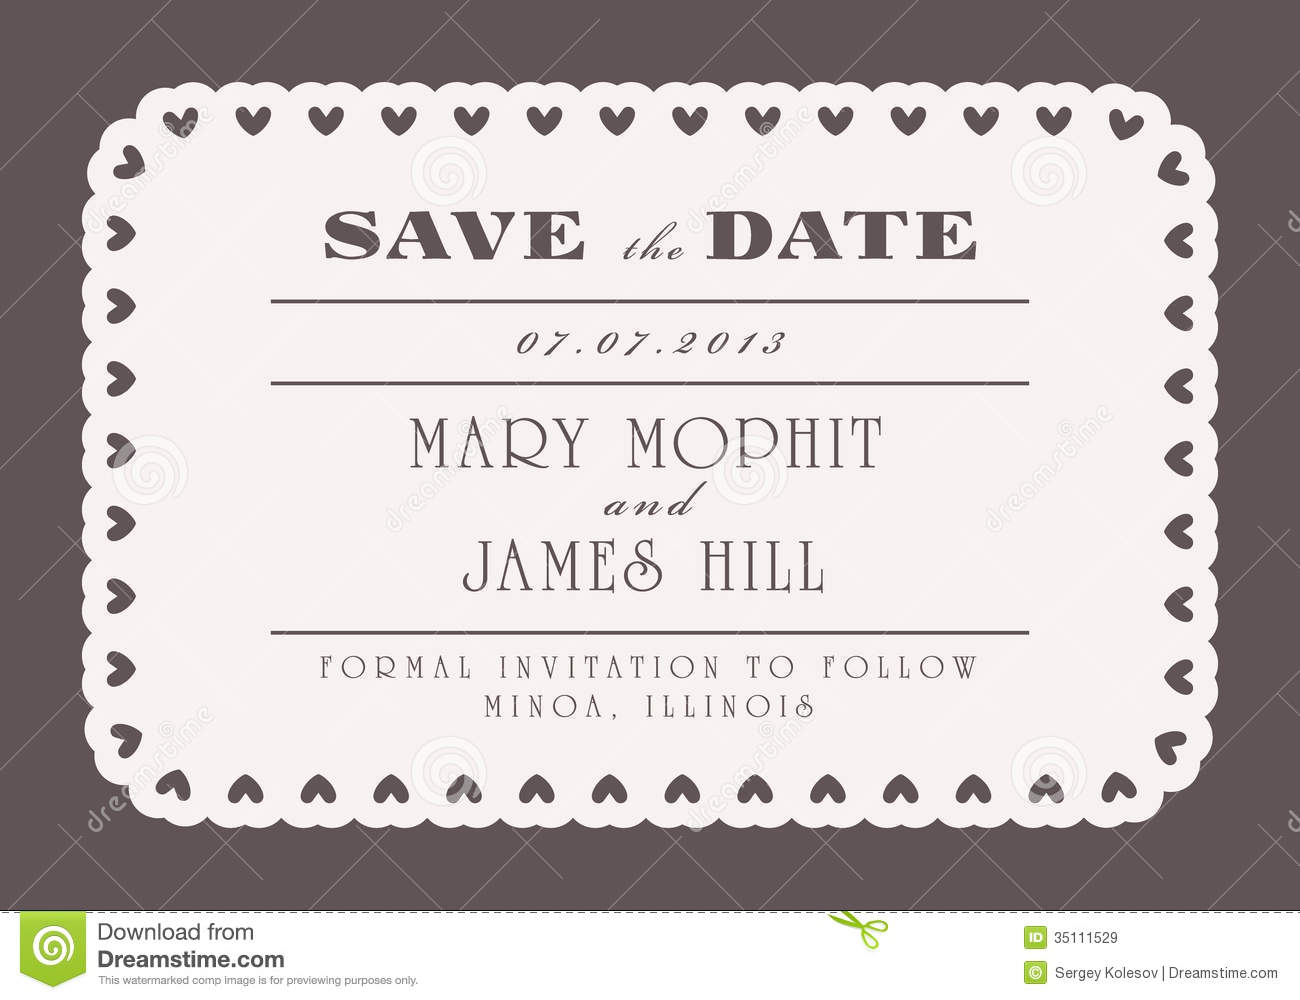 save the date with vintage background artwork stock vector